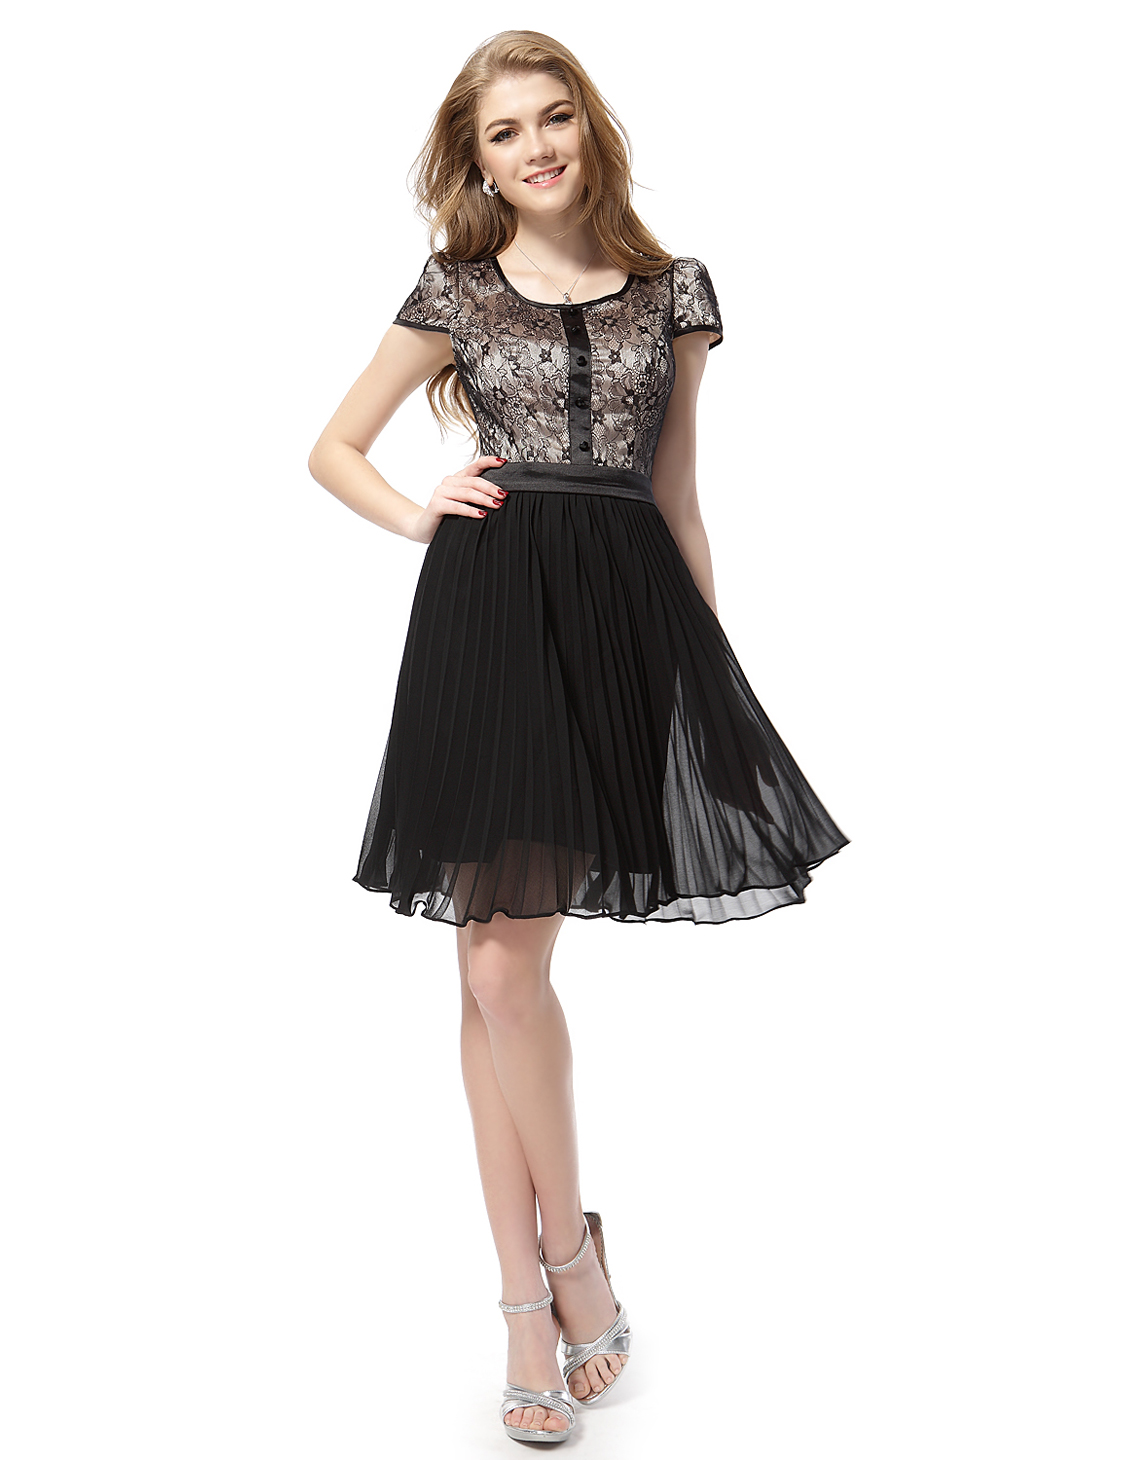 Short Black Lace Dress With Sleeves Short Sleeve Halter Black Lace